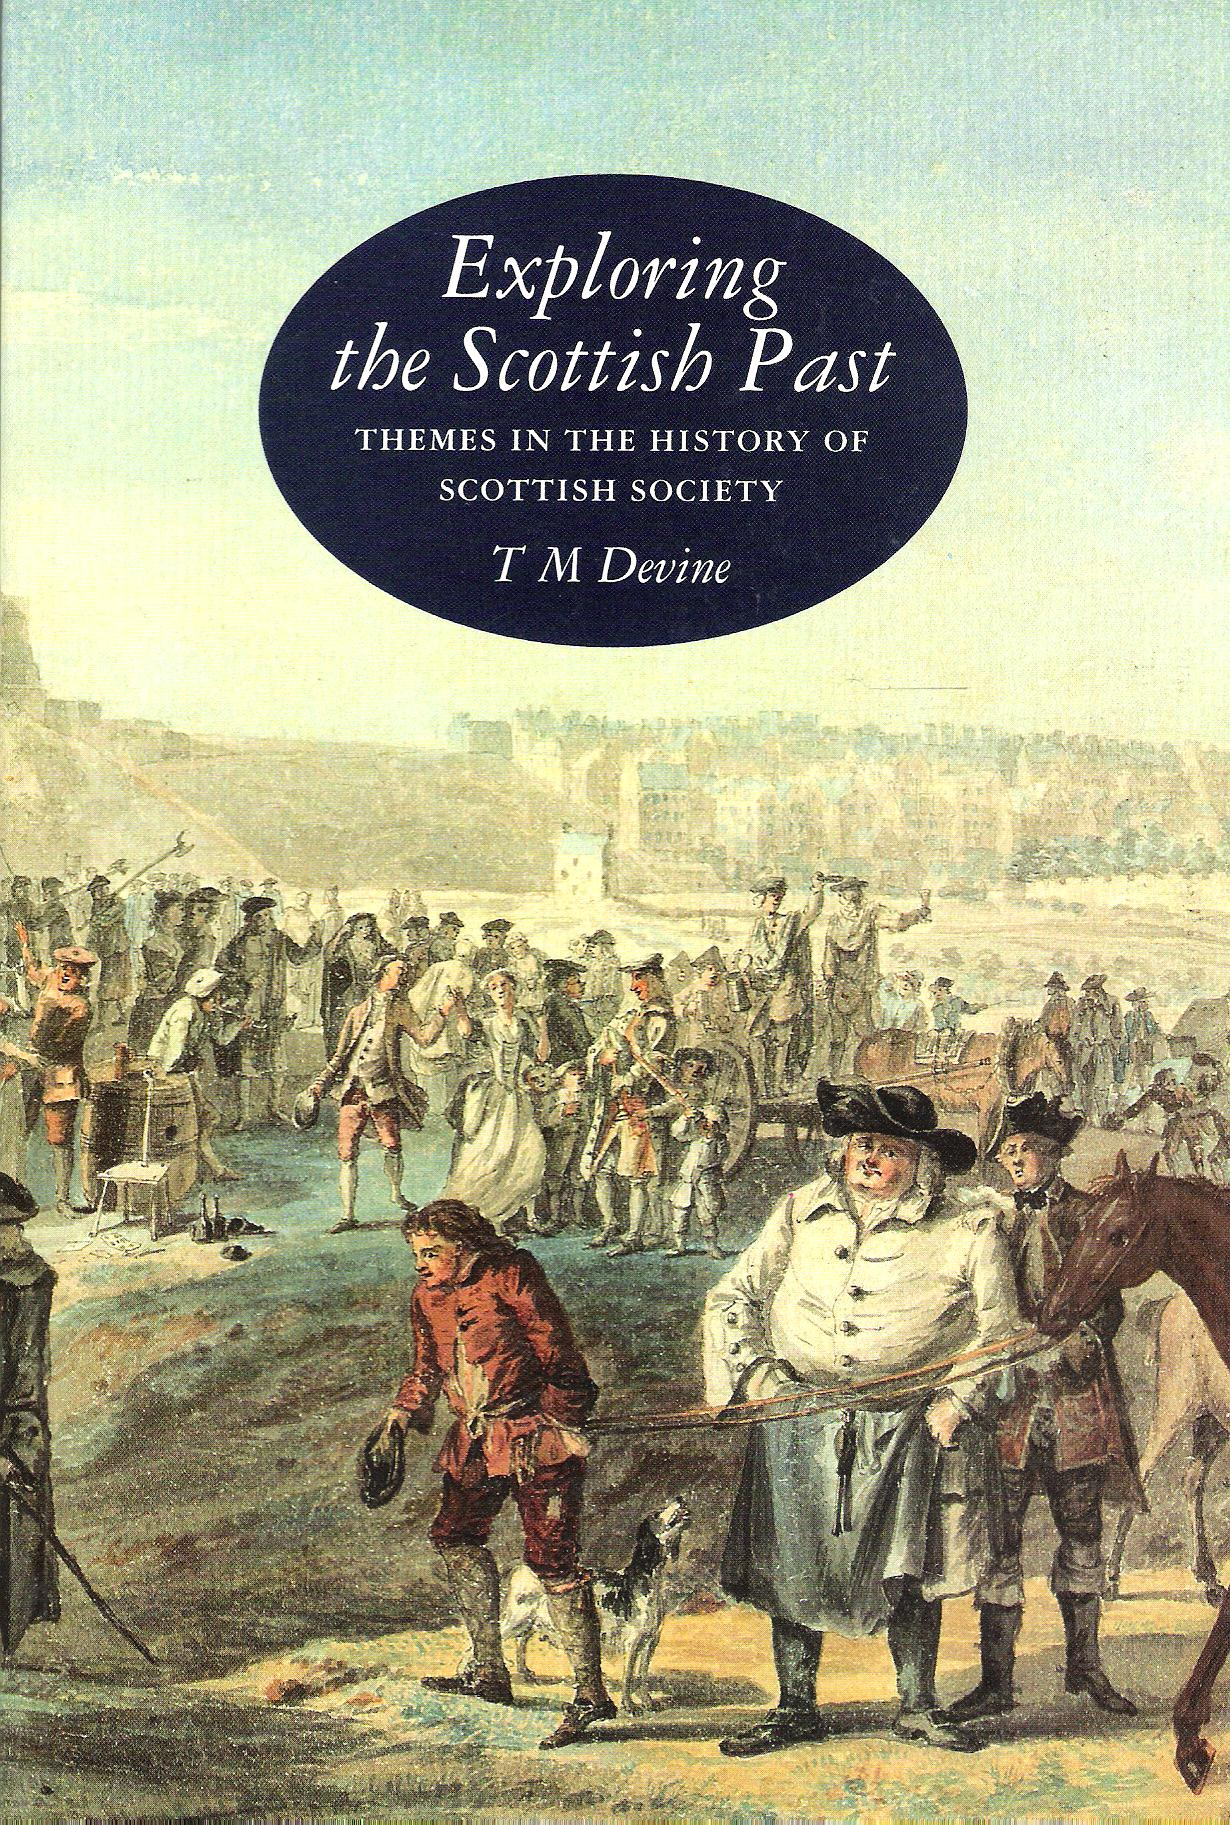 Image for Exploring the Scottish Past: Themes in the History of Scottish Society.